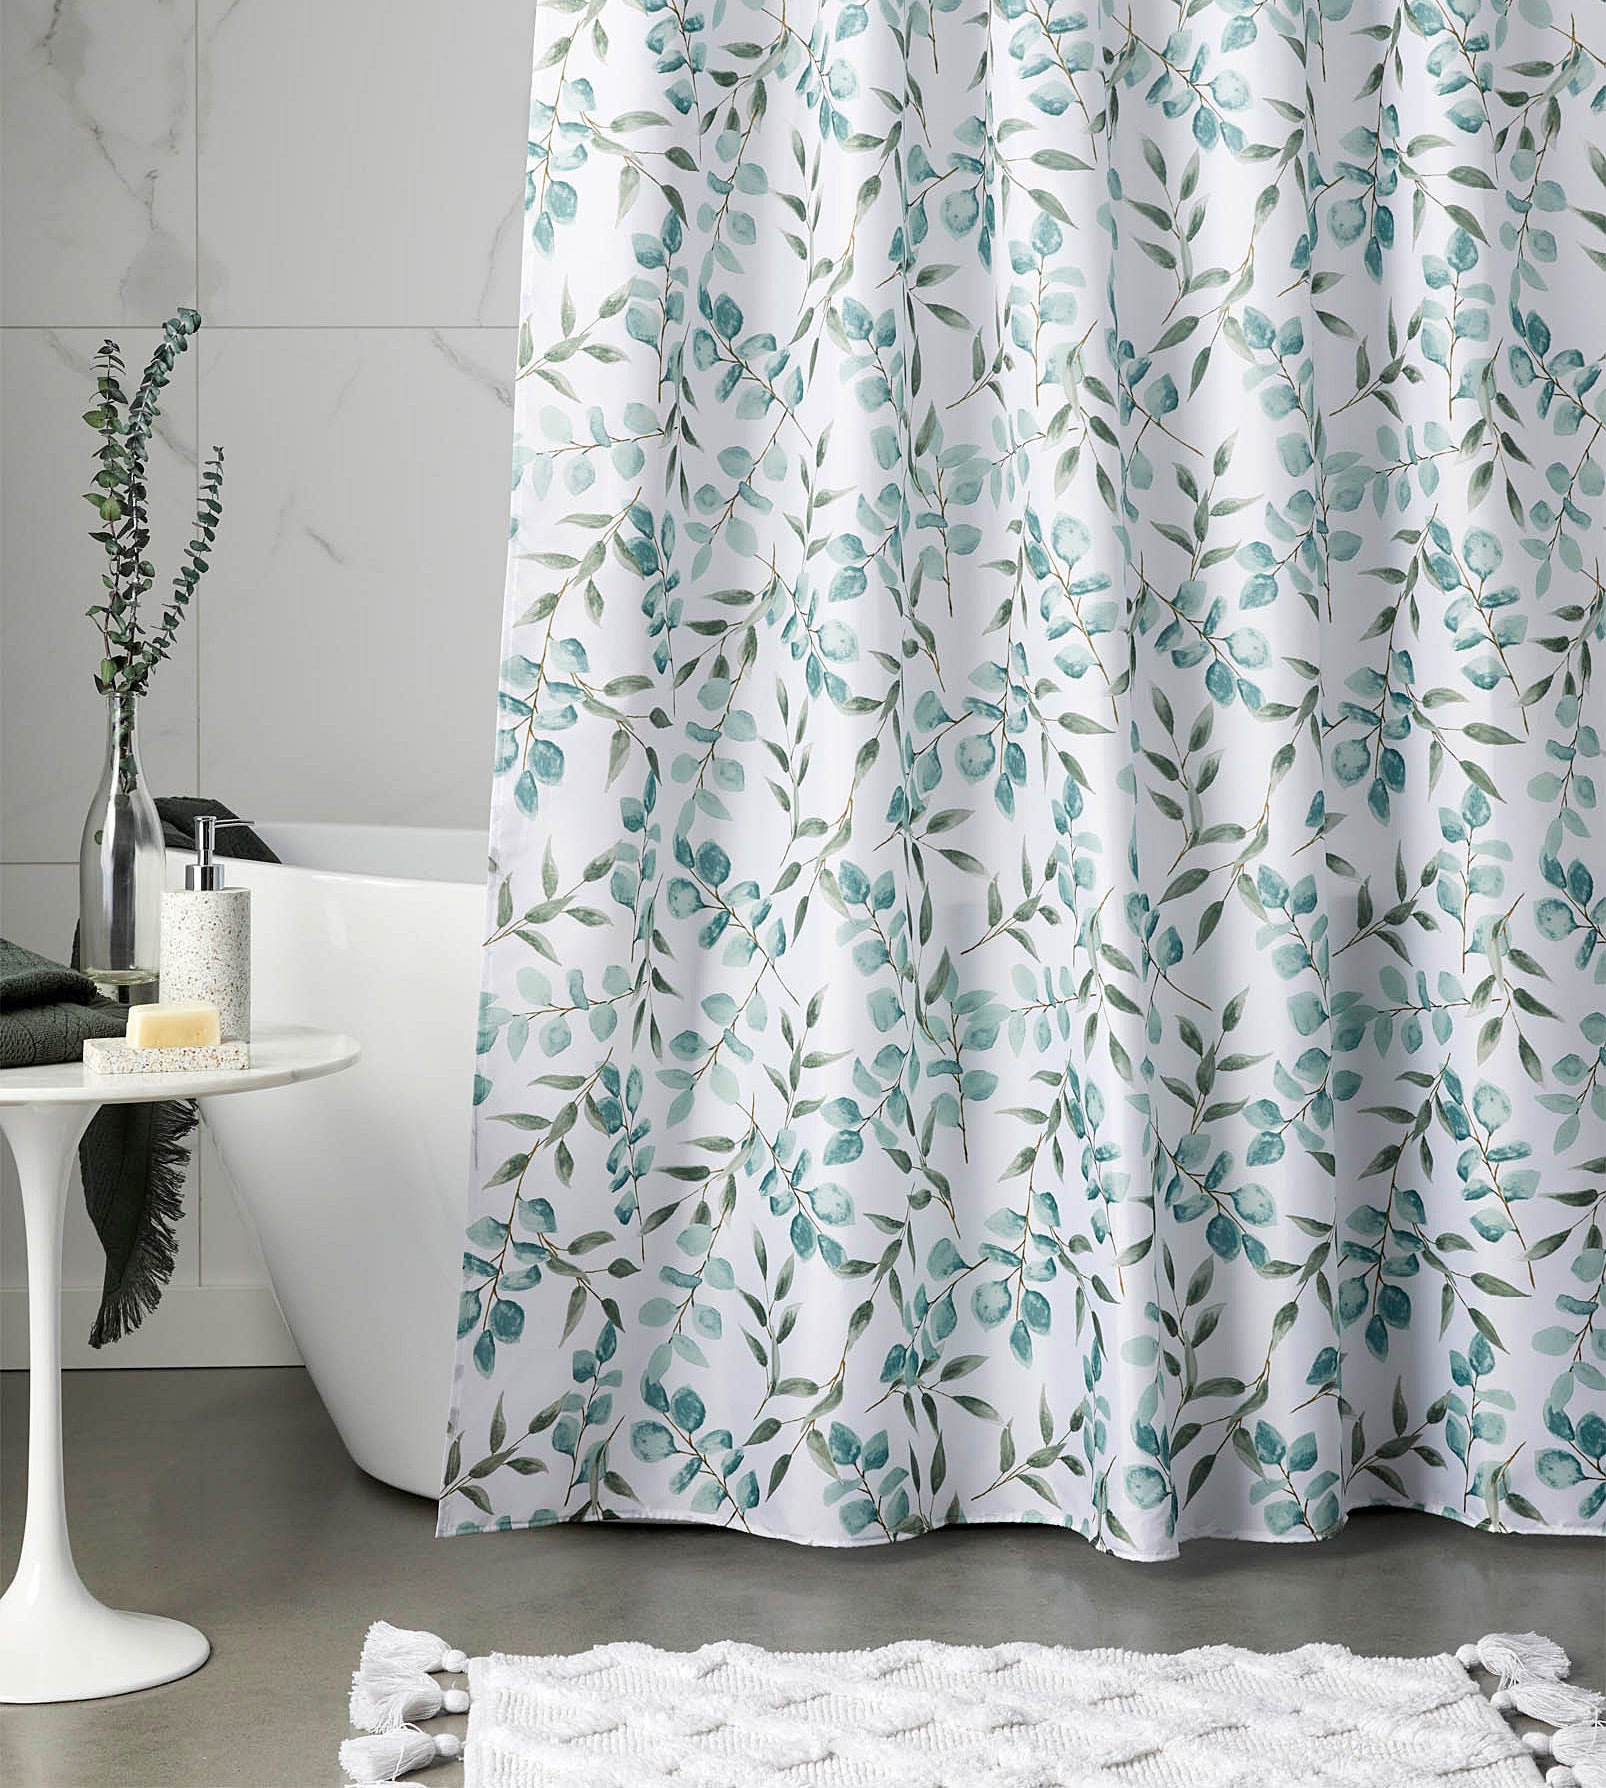 A cute patterned shower curtain